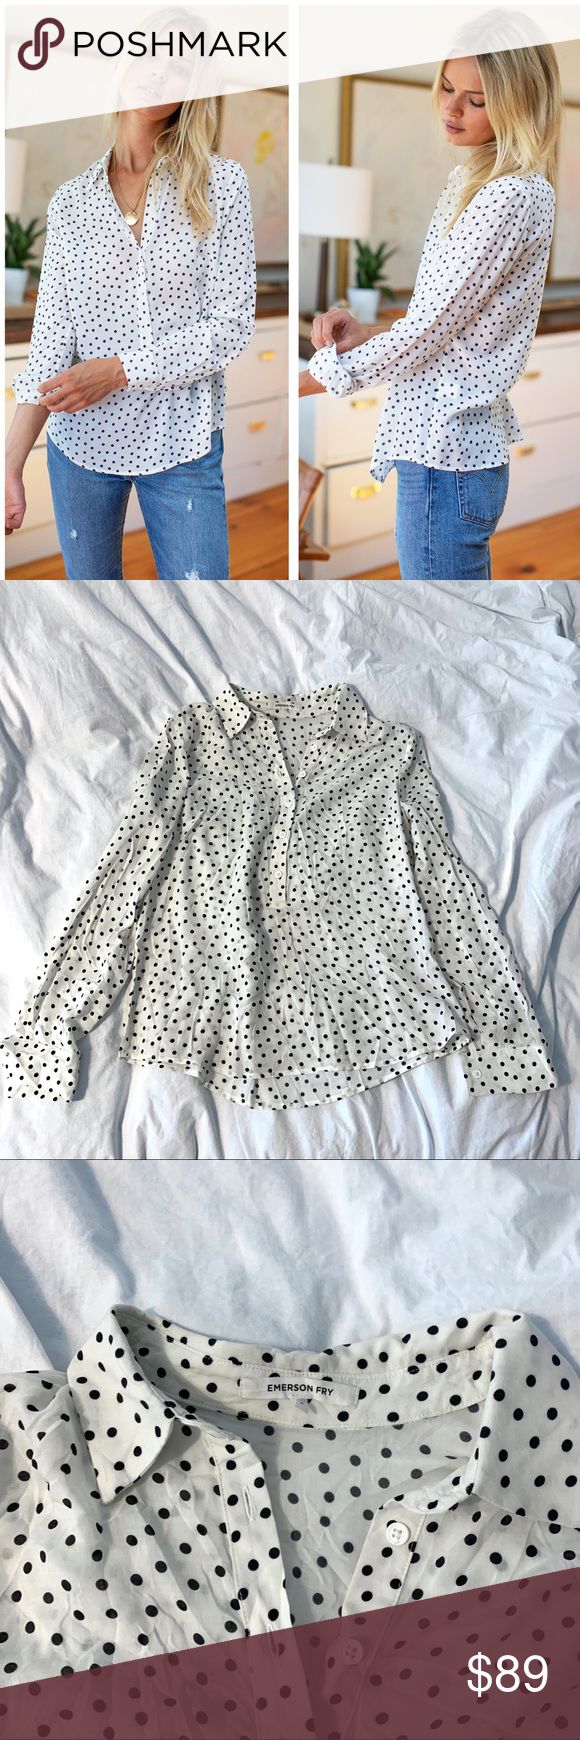 Emerson Fry polka dot blouse s small Emerson Fry blouse Sz small Emerson Fry Tops Blouses #emersonfry